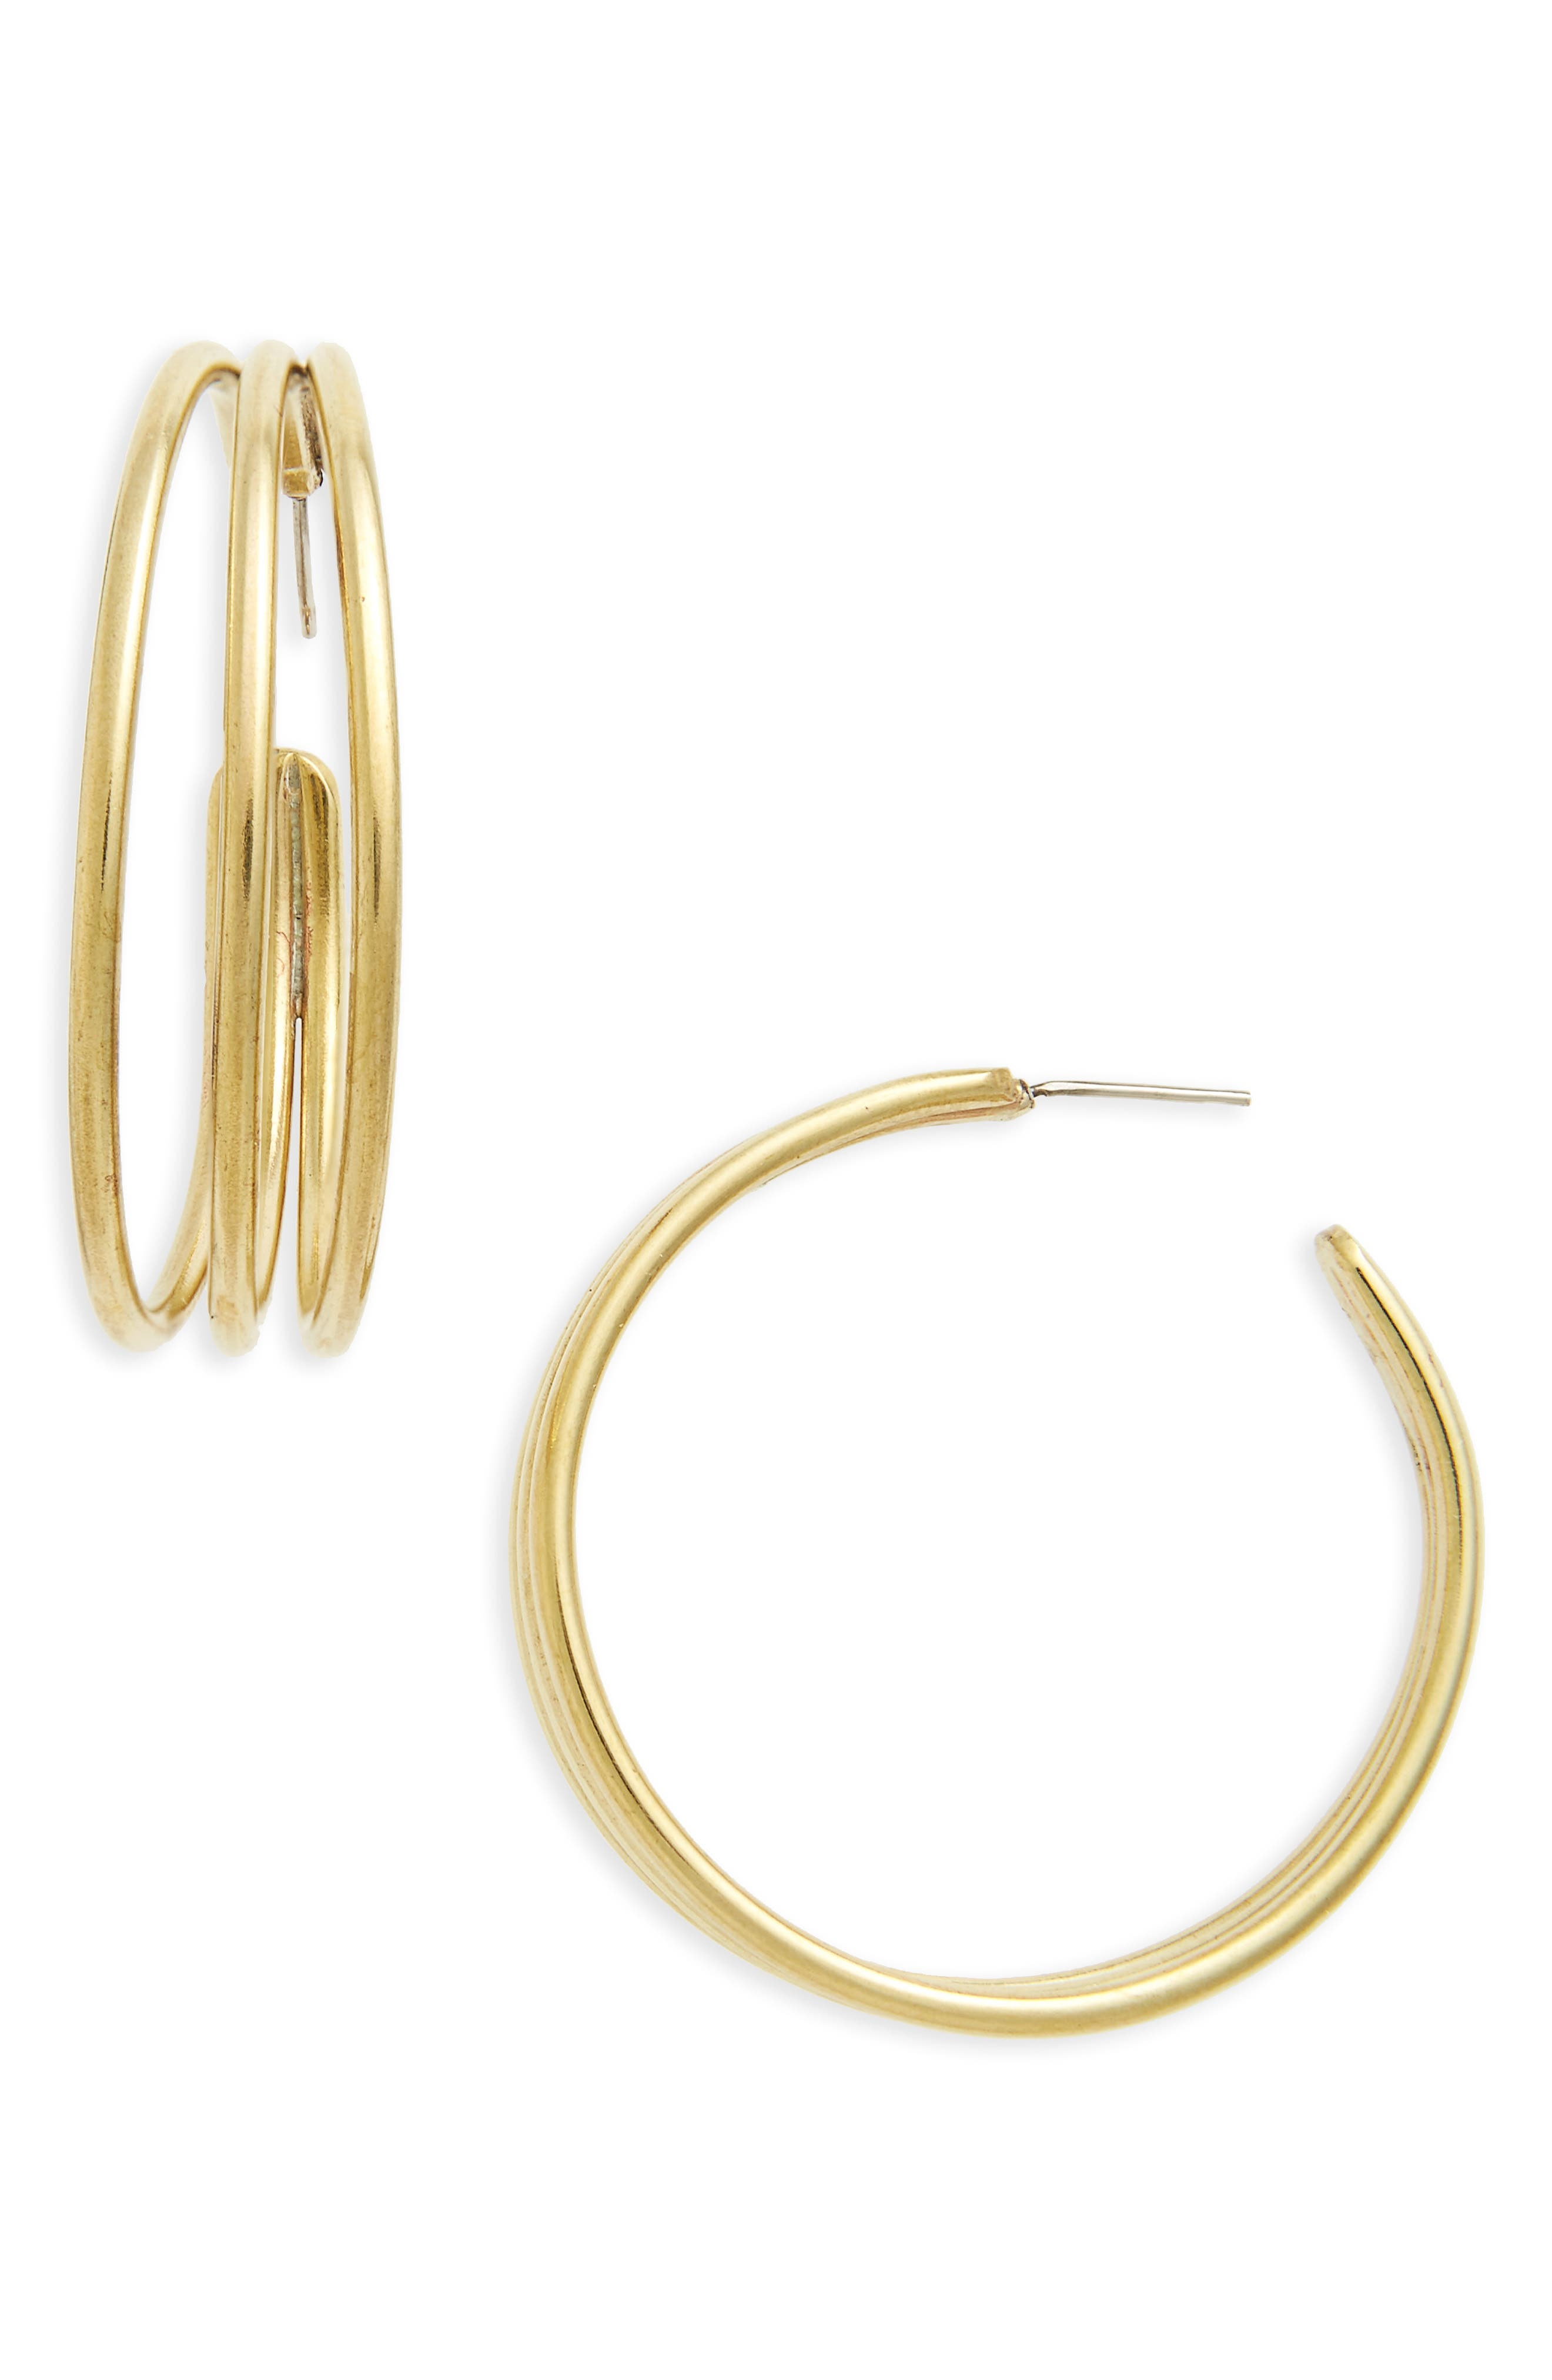 Triple Band Hoop Earrings,                             Main thumbnail 1, color,                             Brass